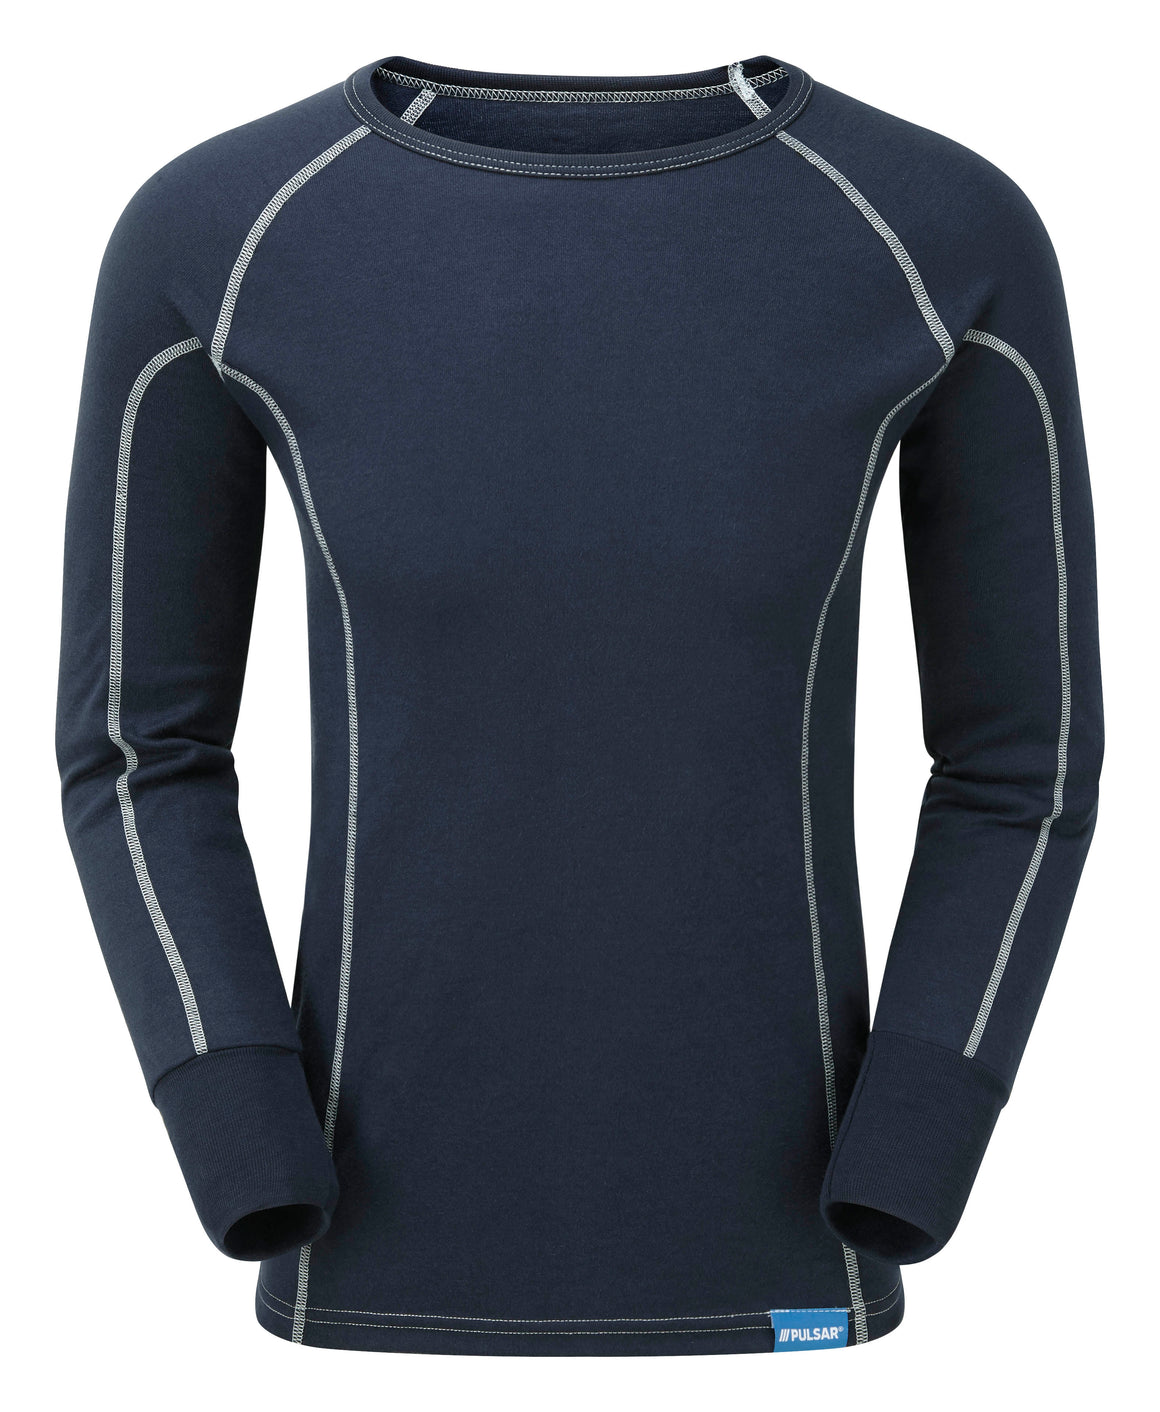 a front shot of the PULSAR Blizzard men's long sleeve thermal base layer